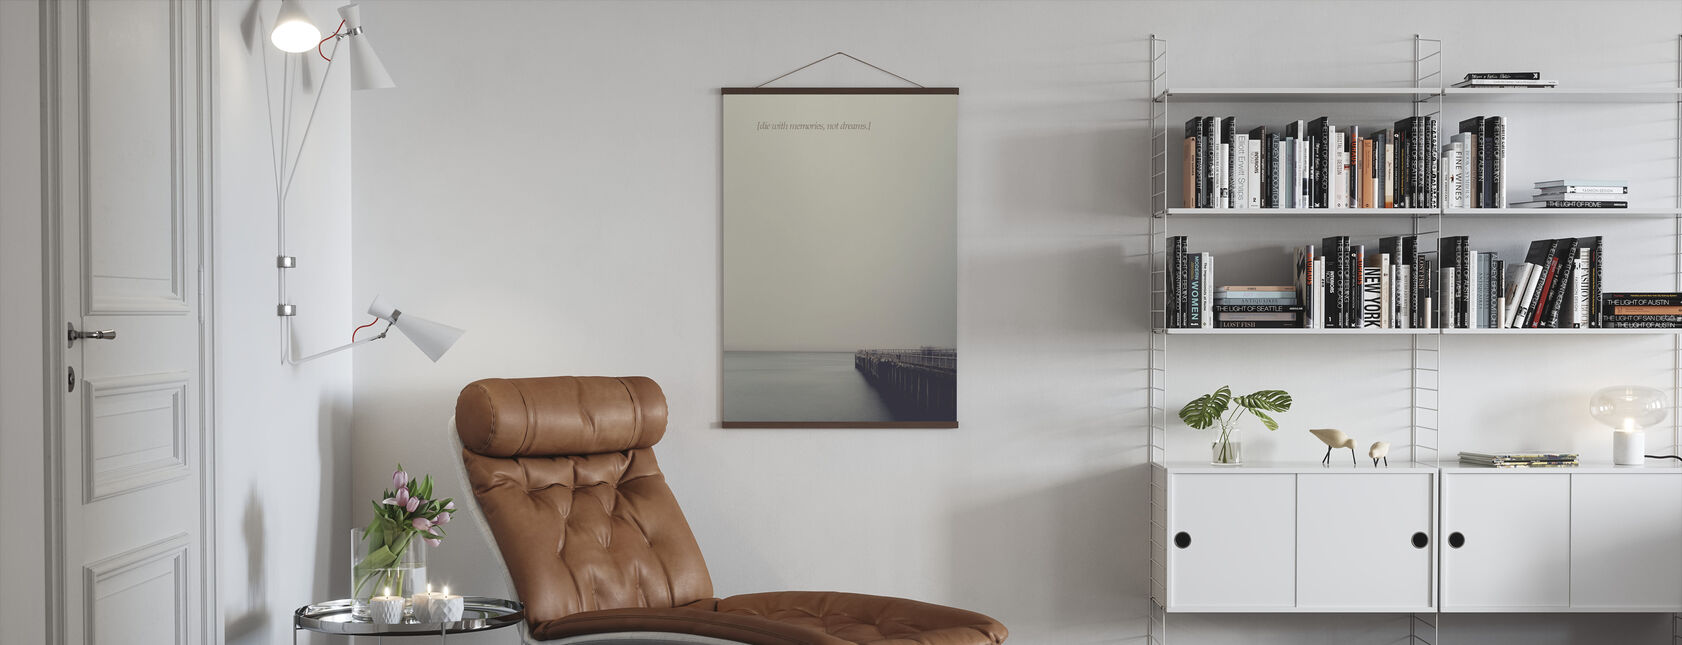 Memories and Dreams - Poster - Living Room